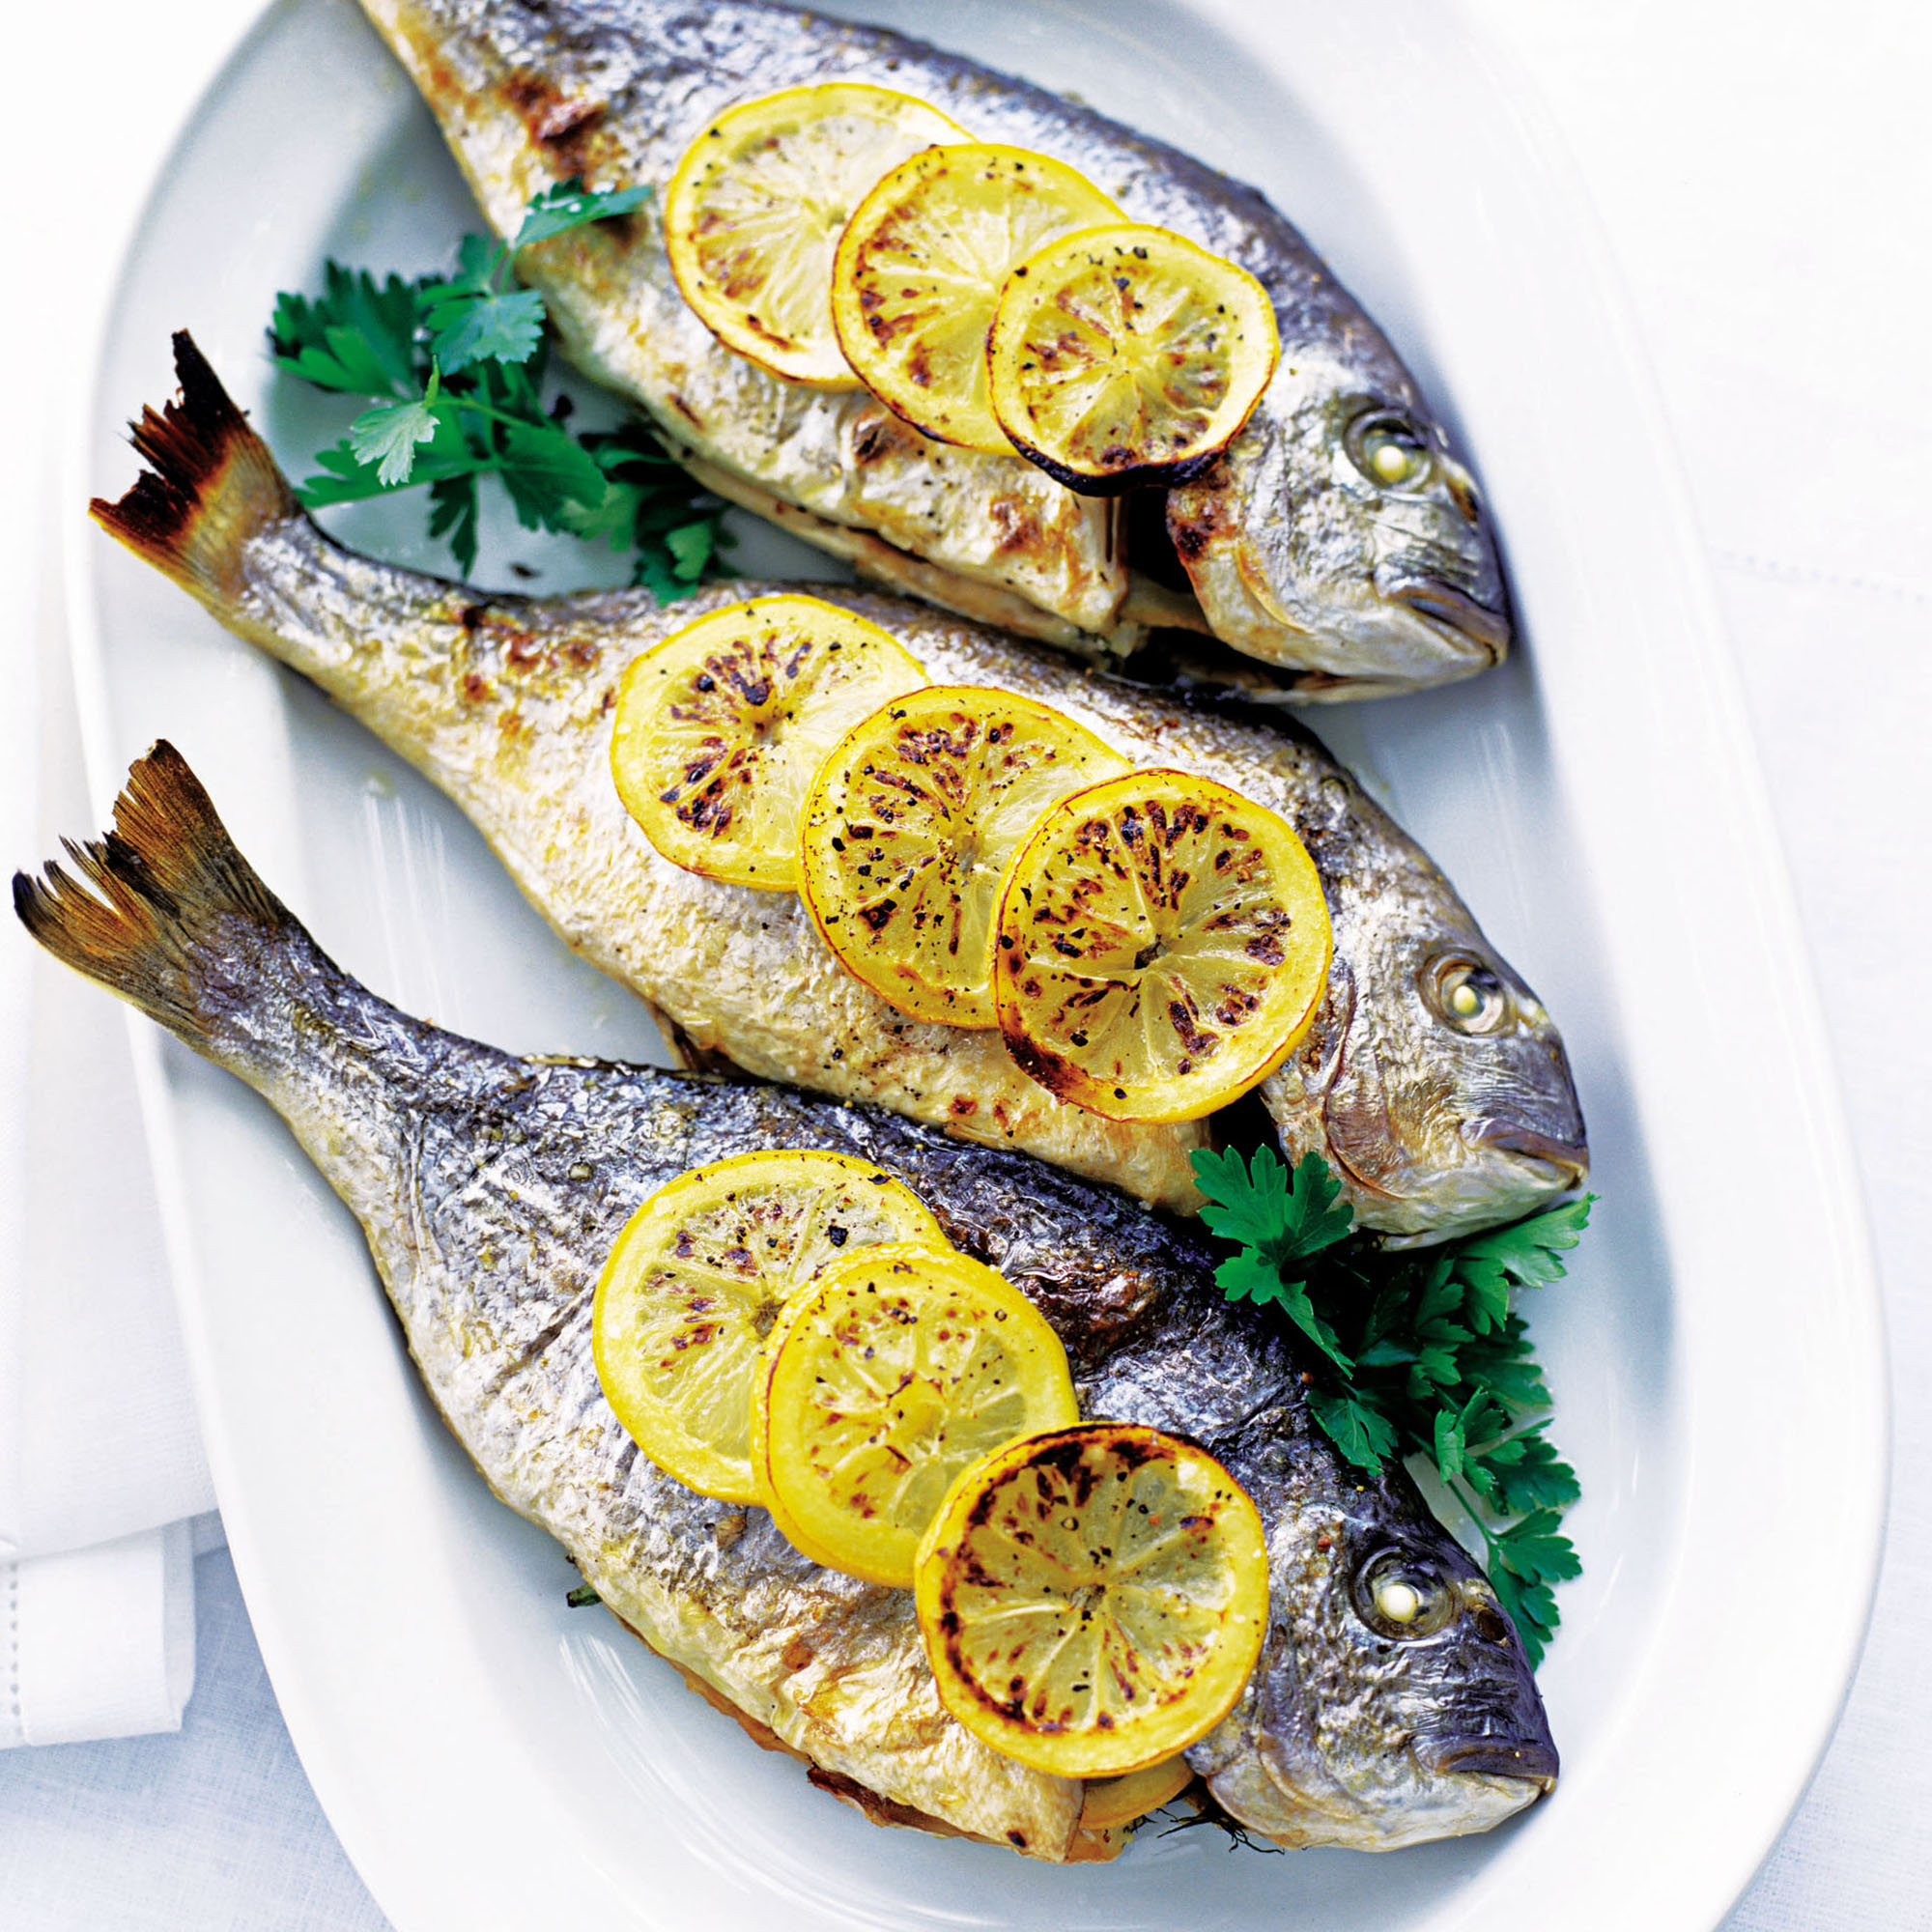 Baked Sea Bream With Lemon And Parsley Dinner Recipes Woman Home